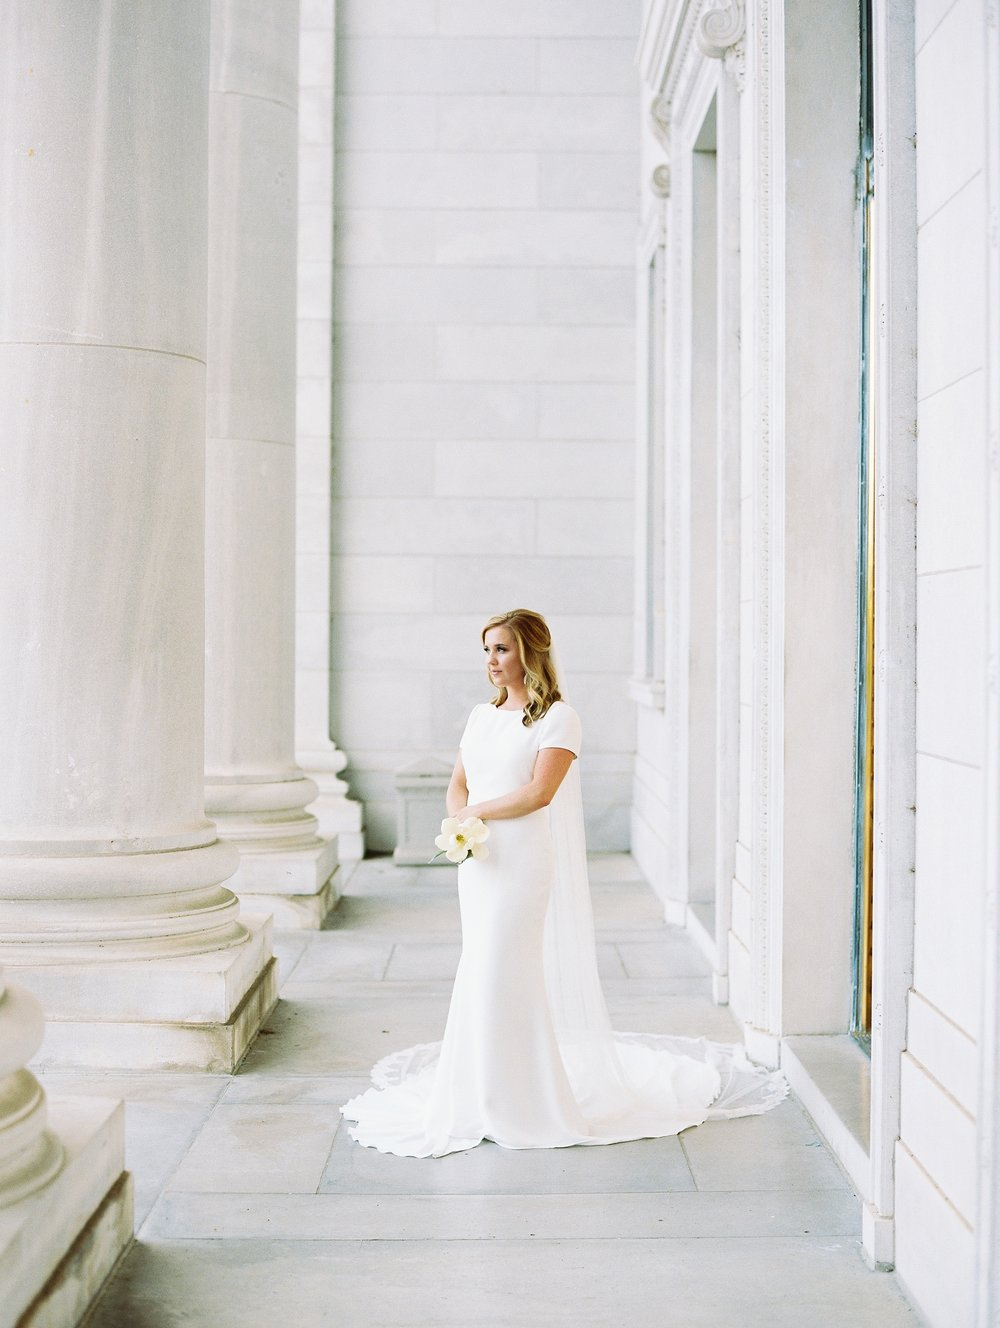 Arkansas Capitol Building Bridals Wedding Photographer_0108.jpg